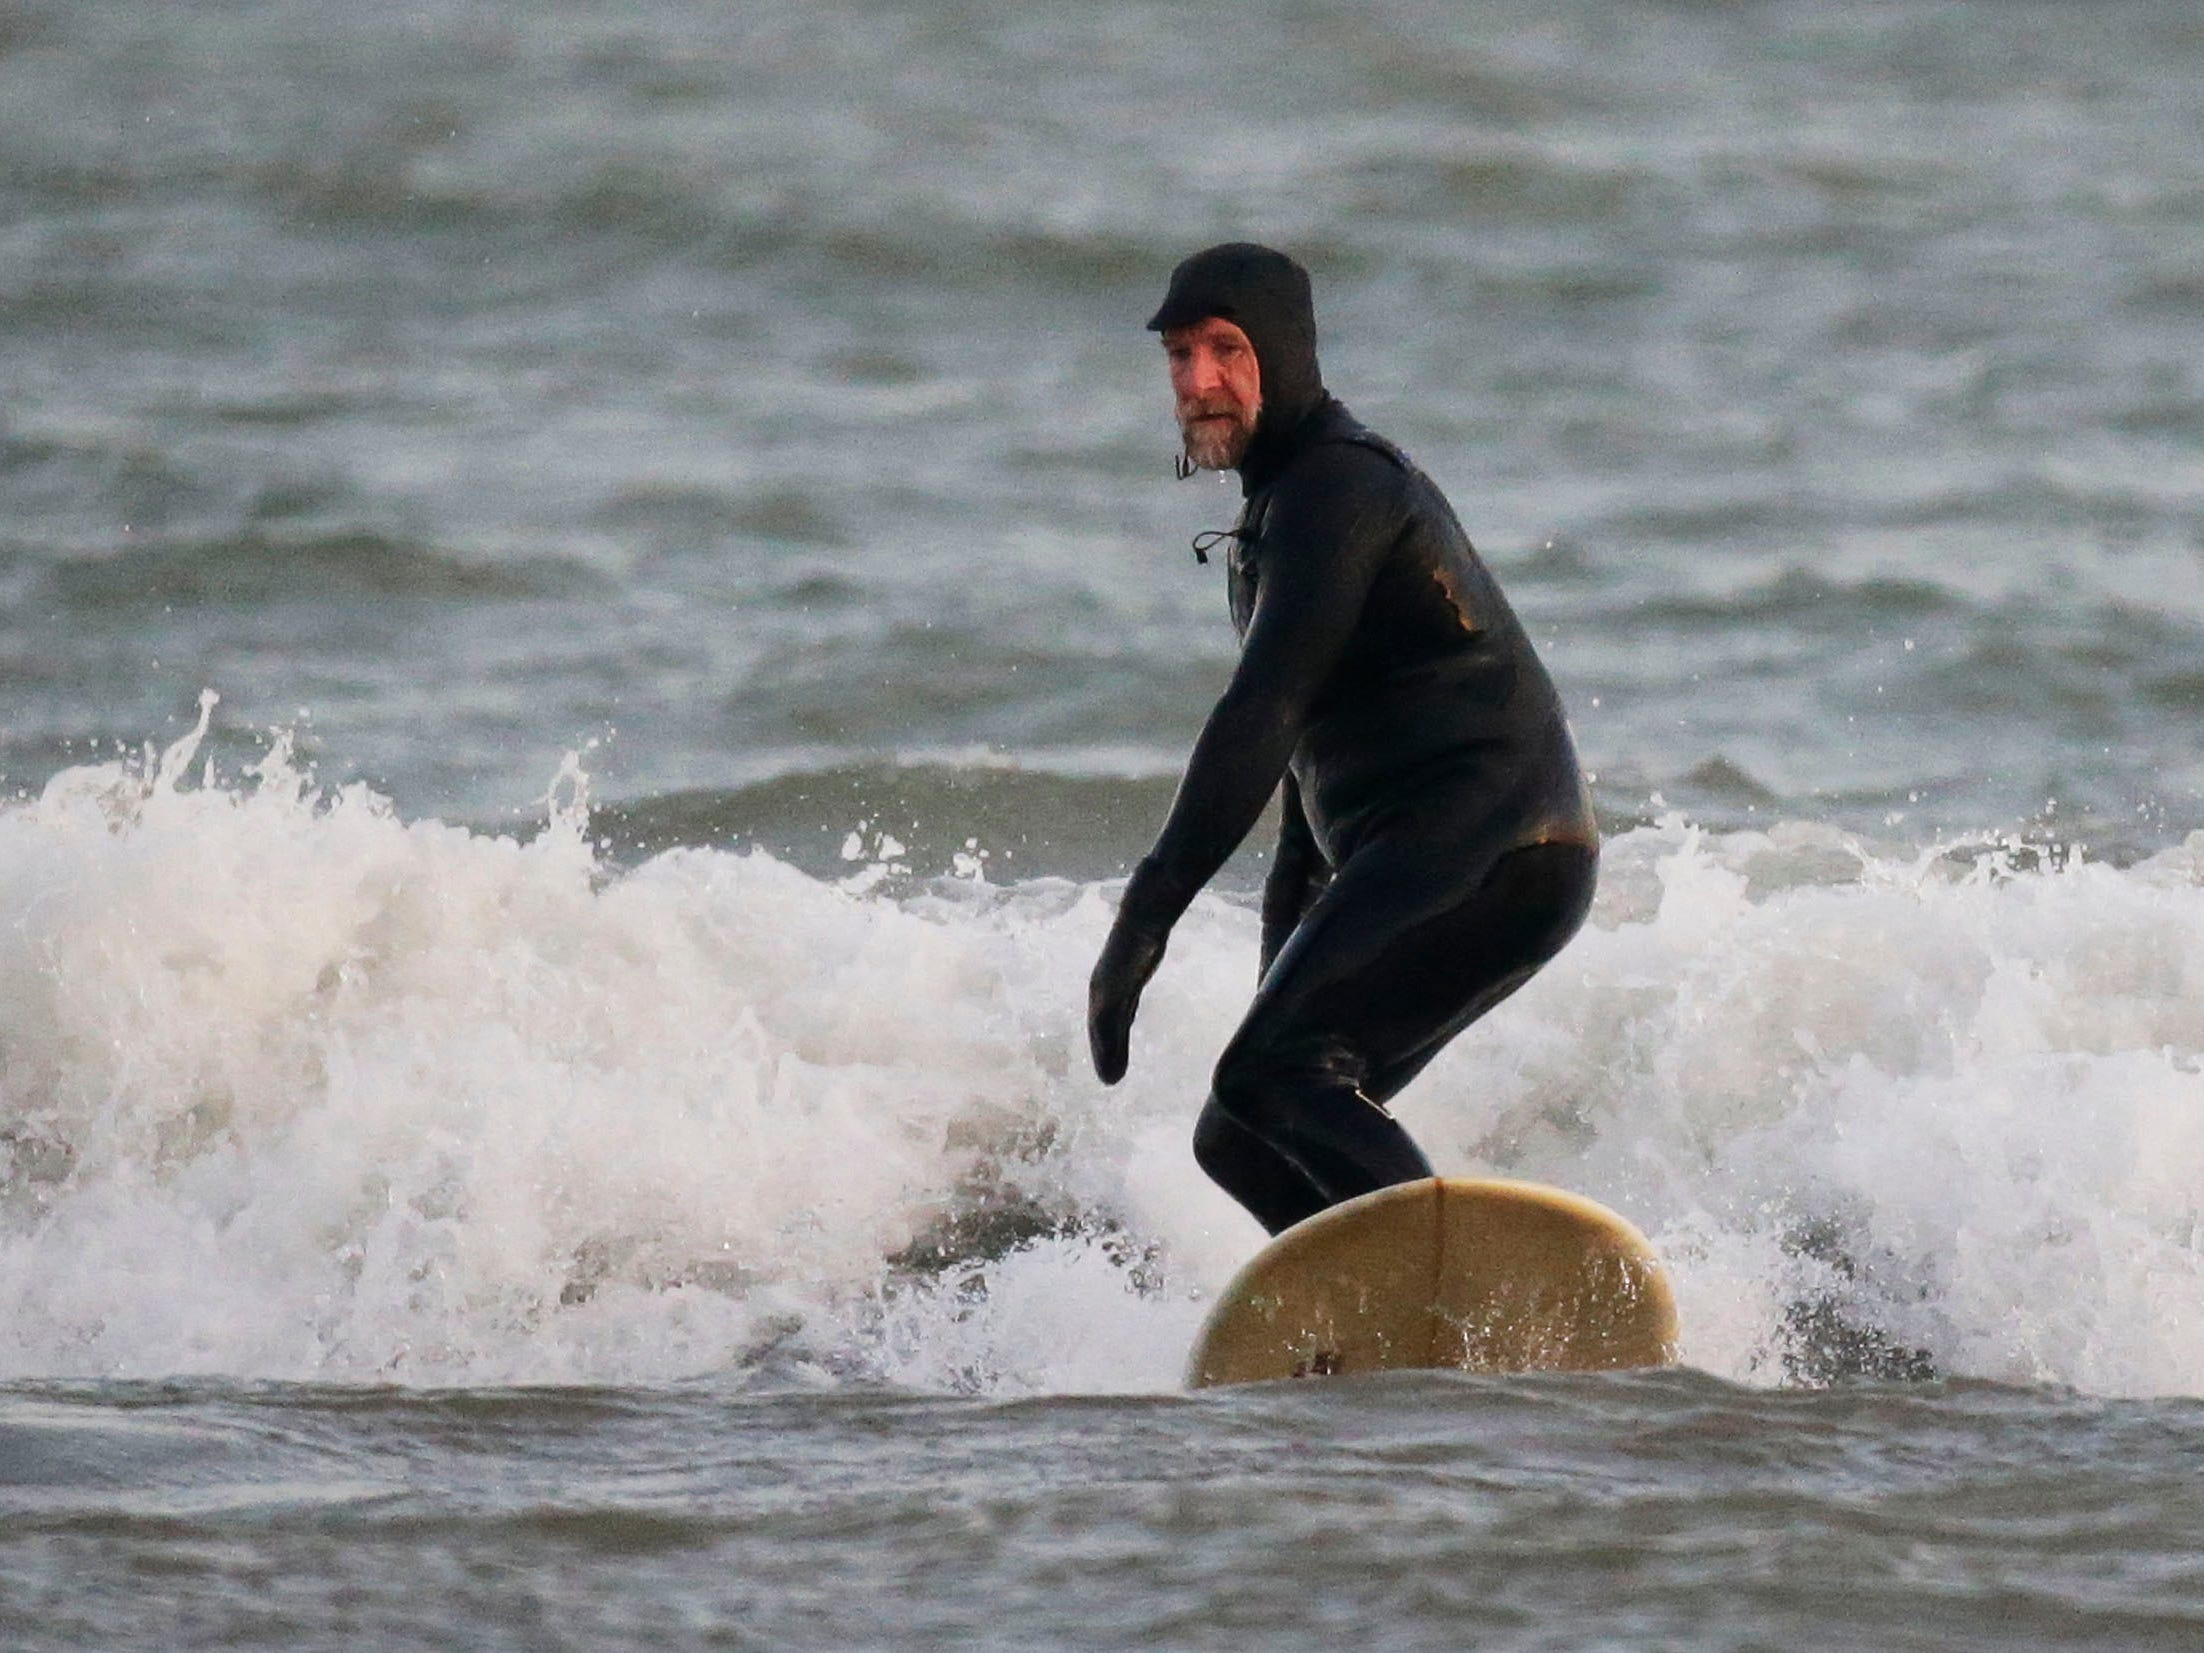 Brian David of Milwaukee takes on the waves at the lakefront, Tuesday, December 18, 2108, in Sheboygan, Wis.